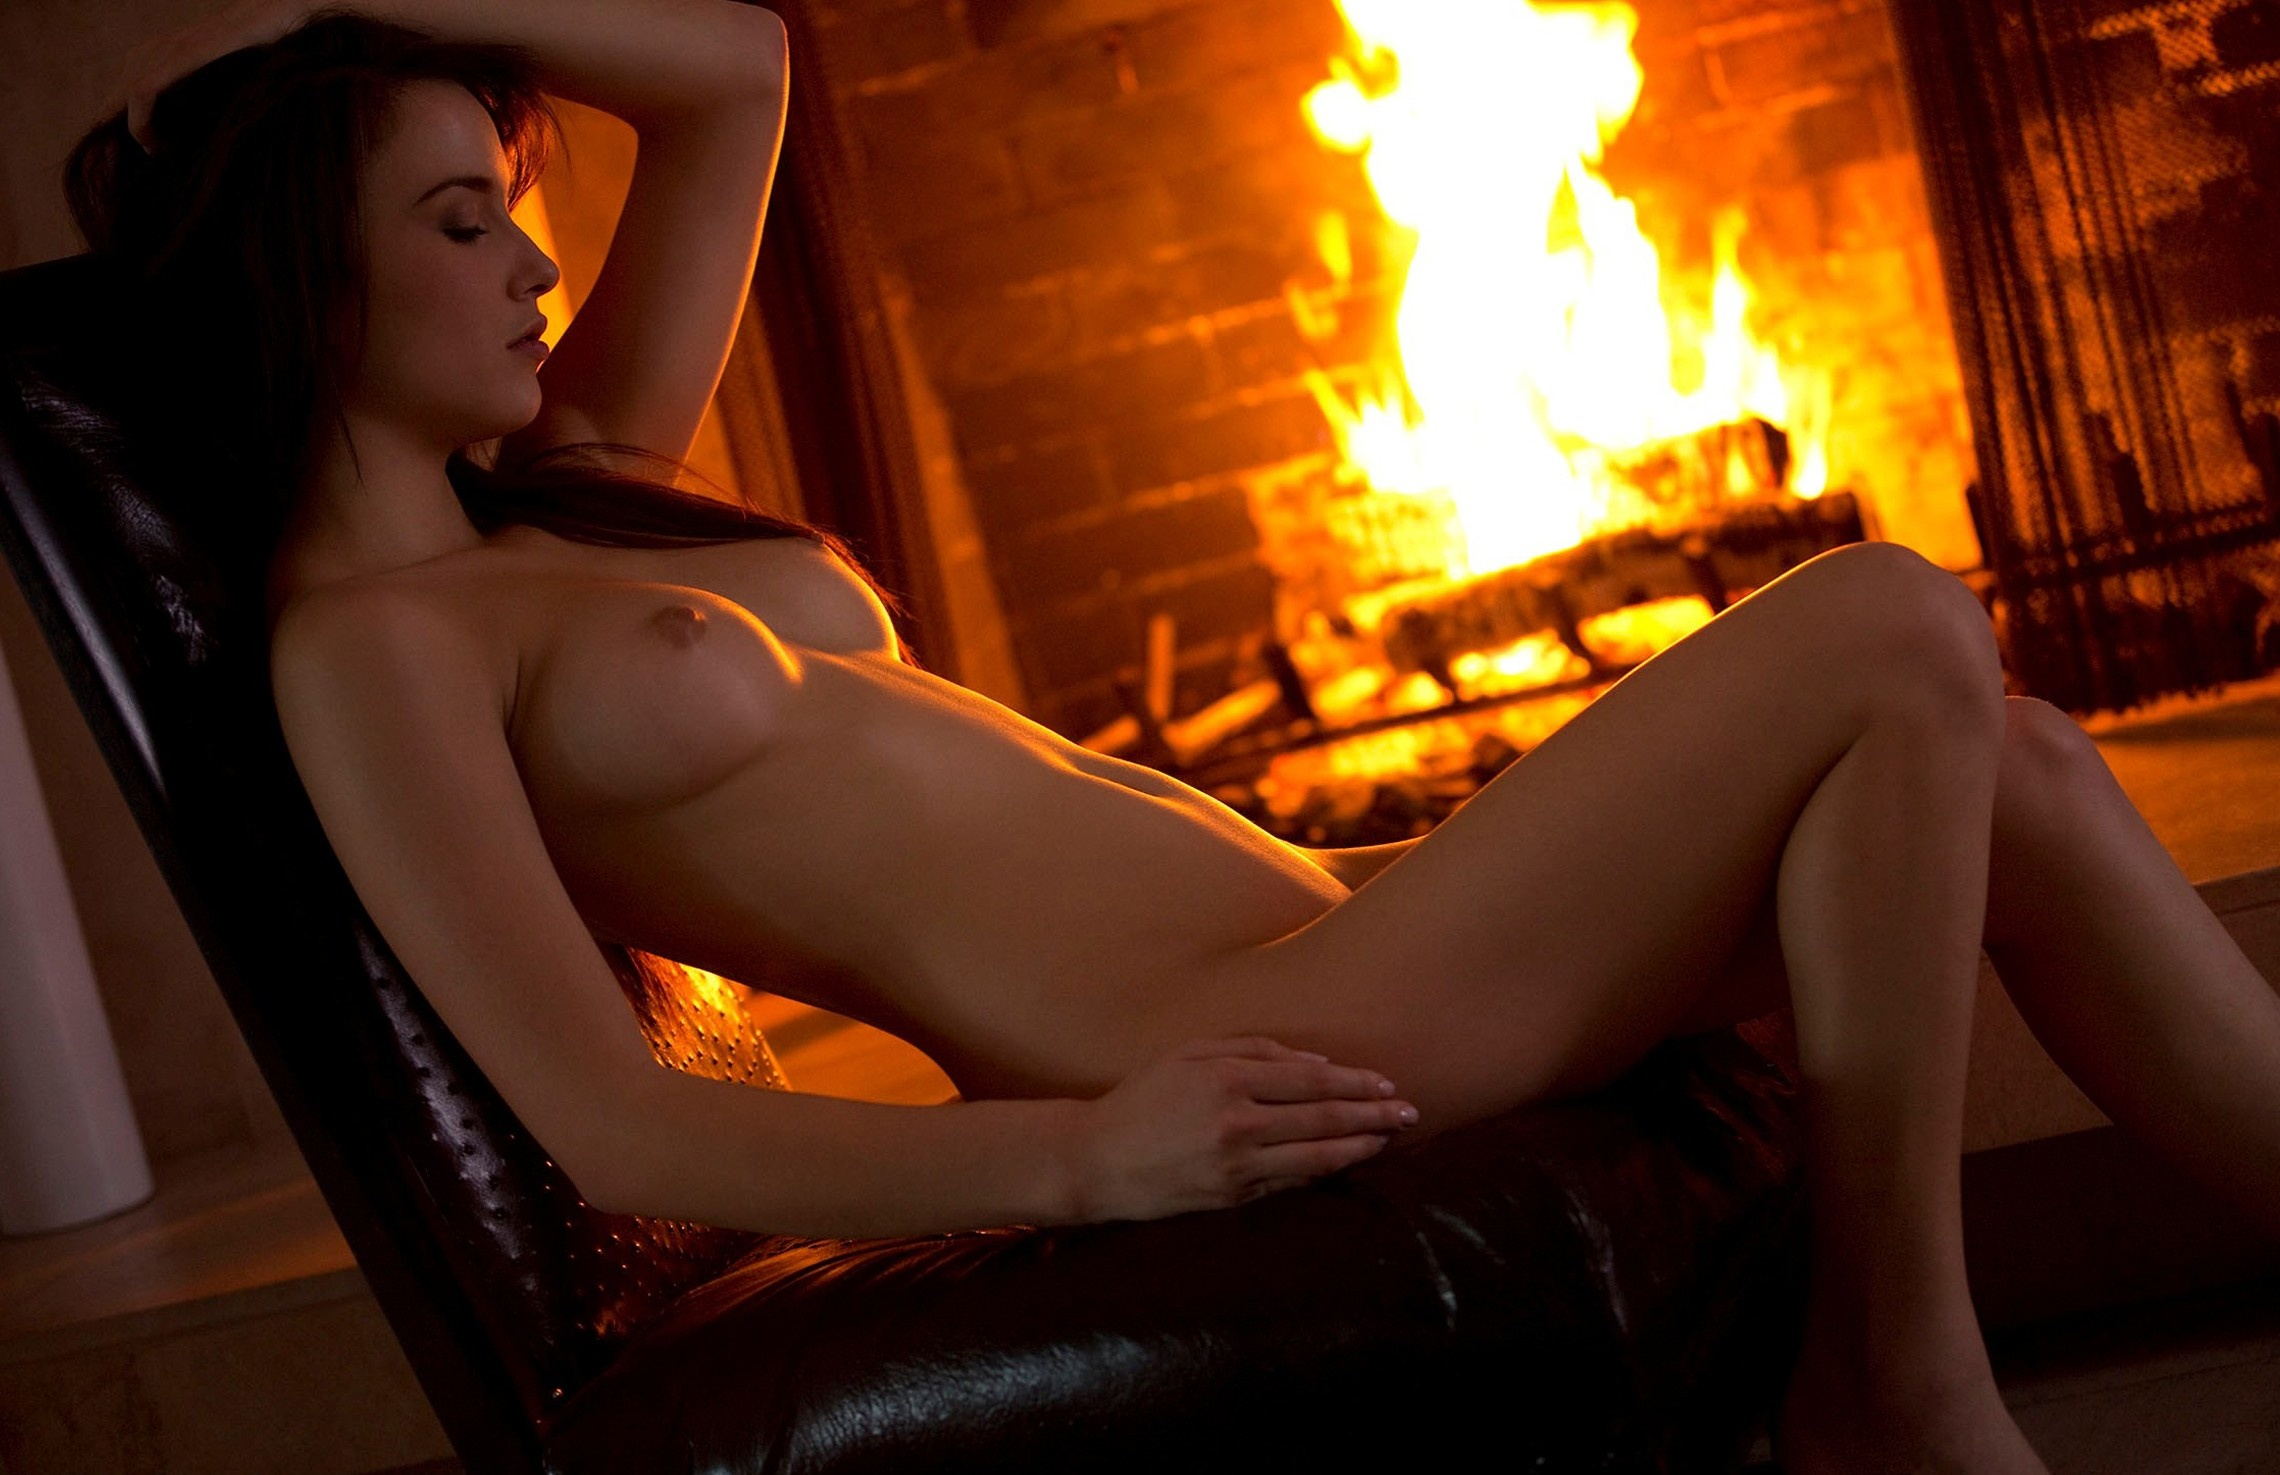 Naked women fire — photo 12